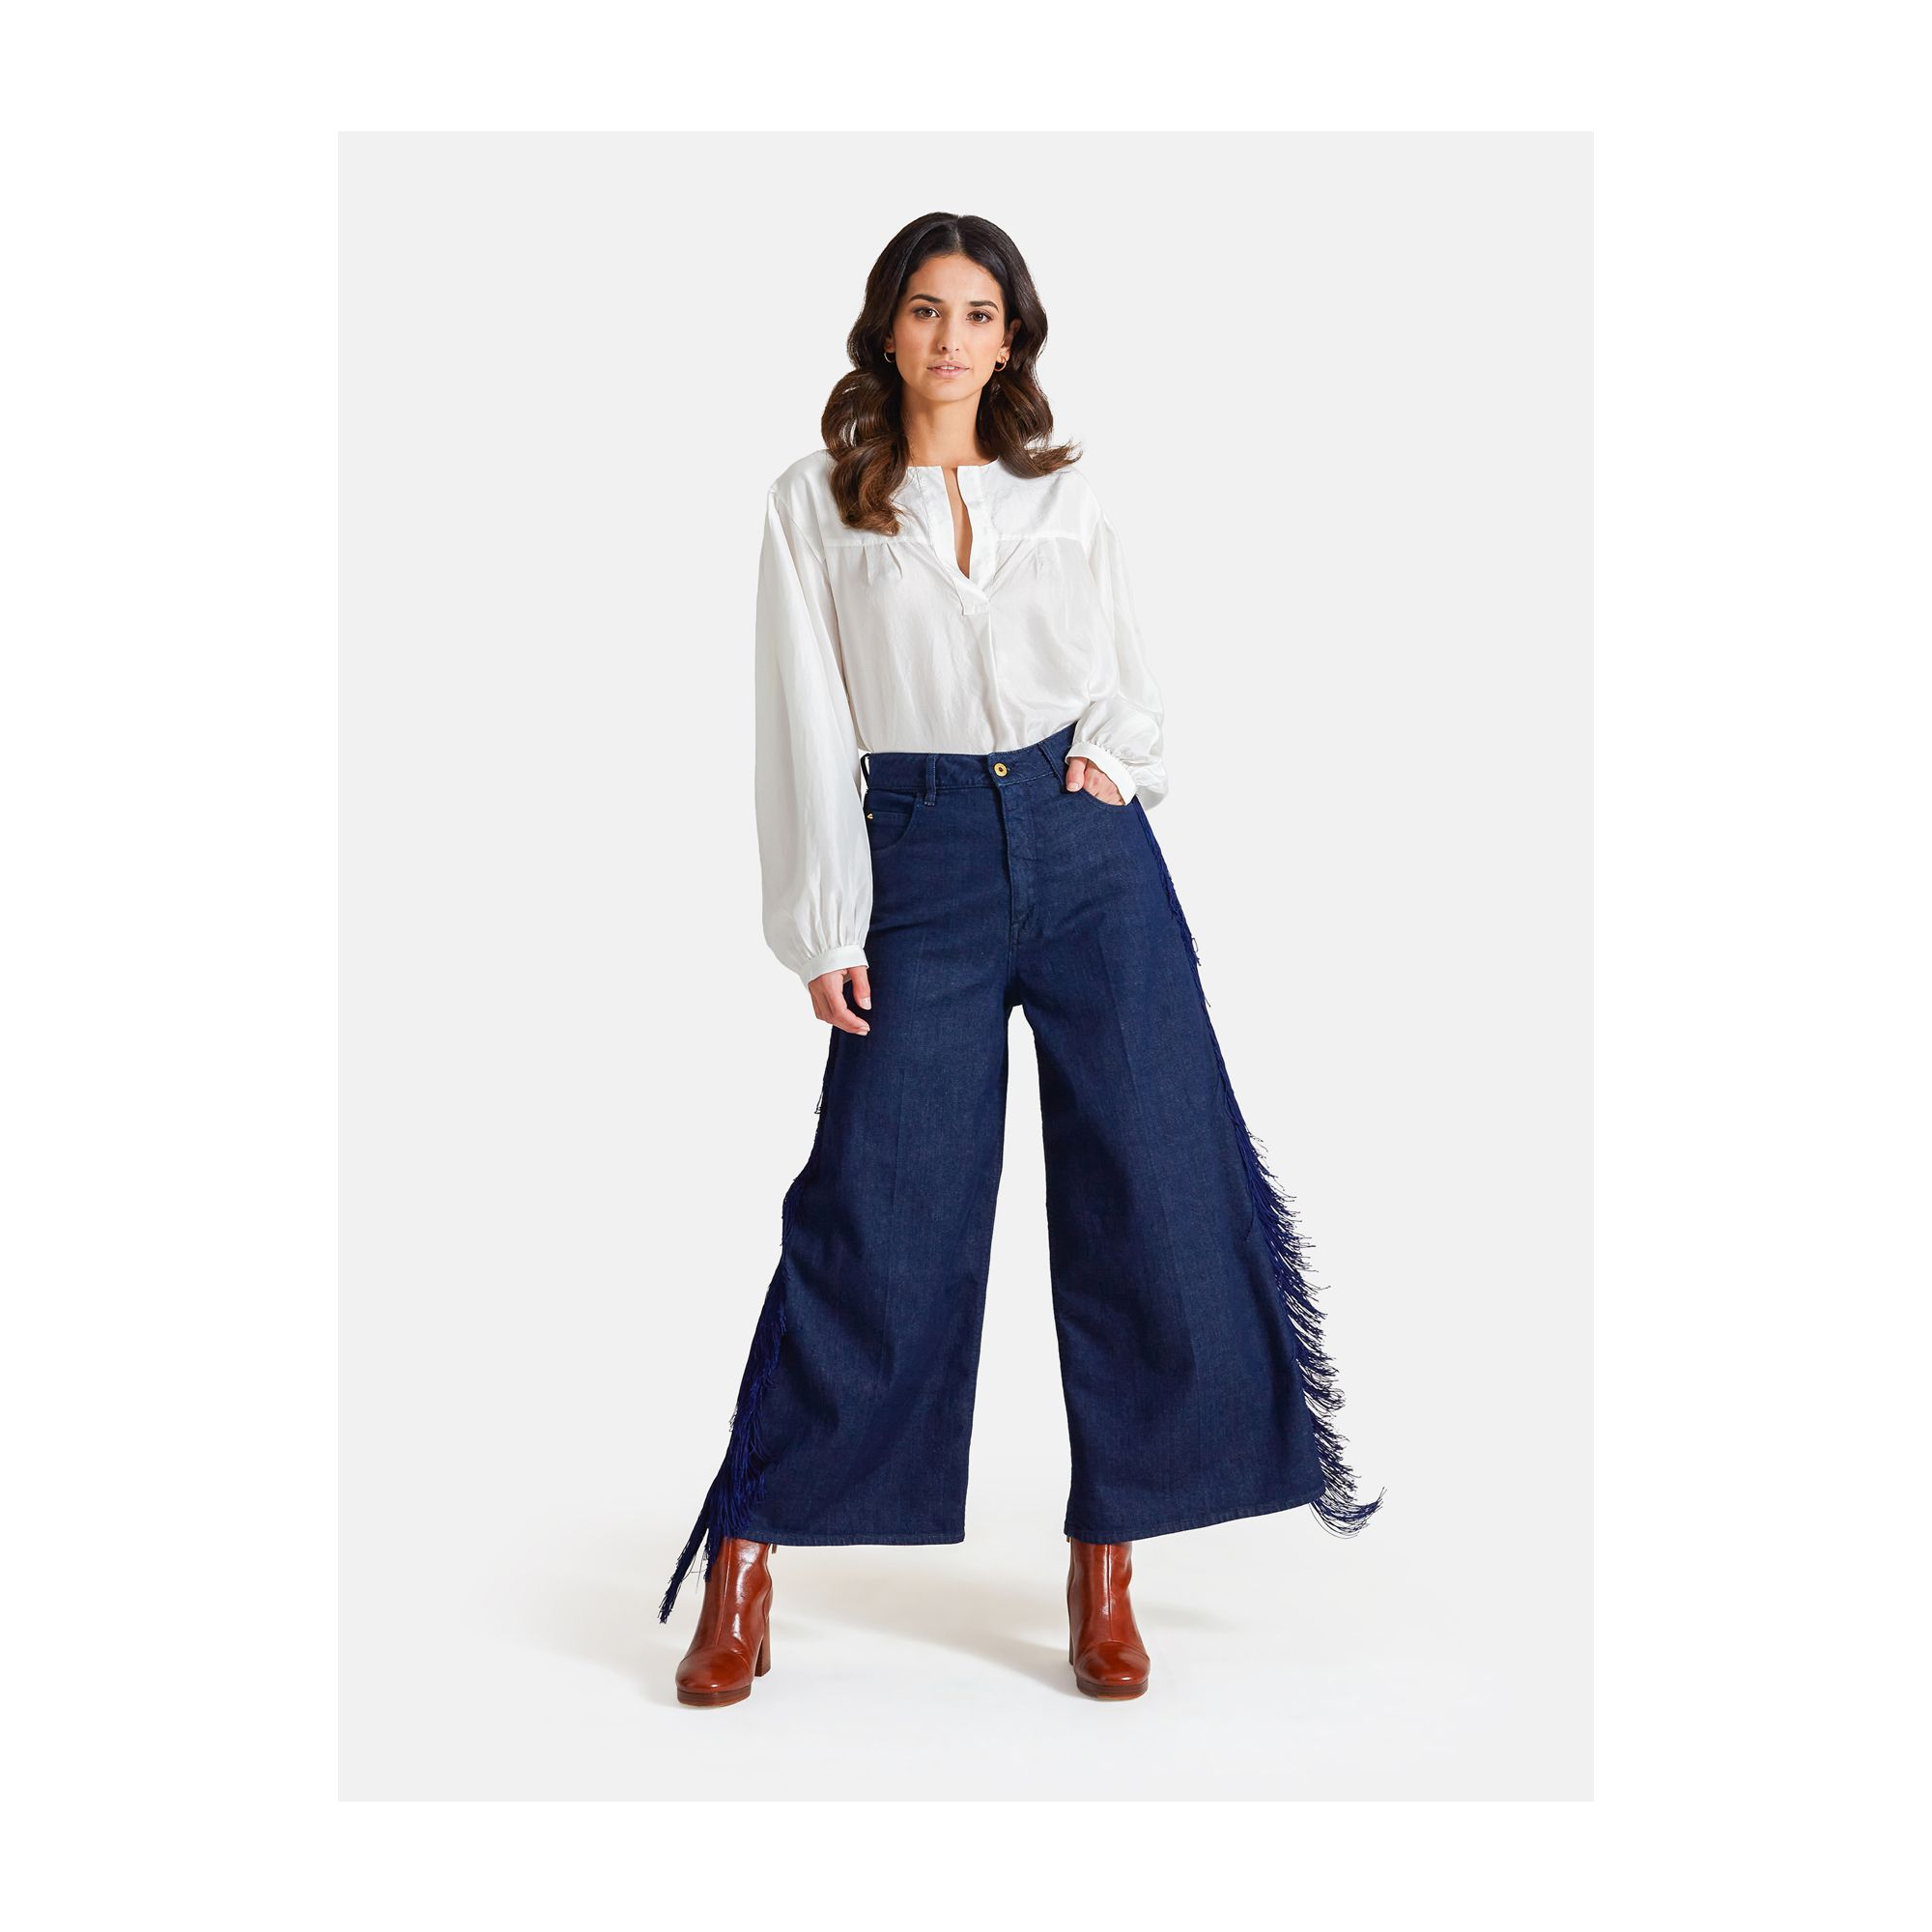 OPEN FRINGED HIGH RISE PALAZZO RINSE WASH NAVY BLUE